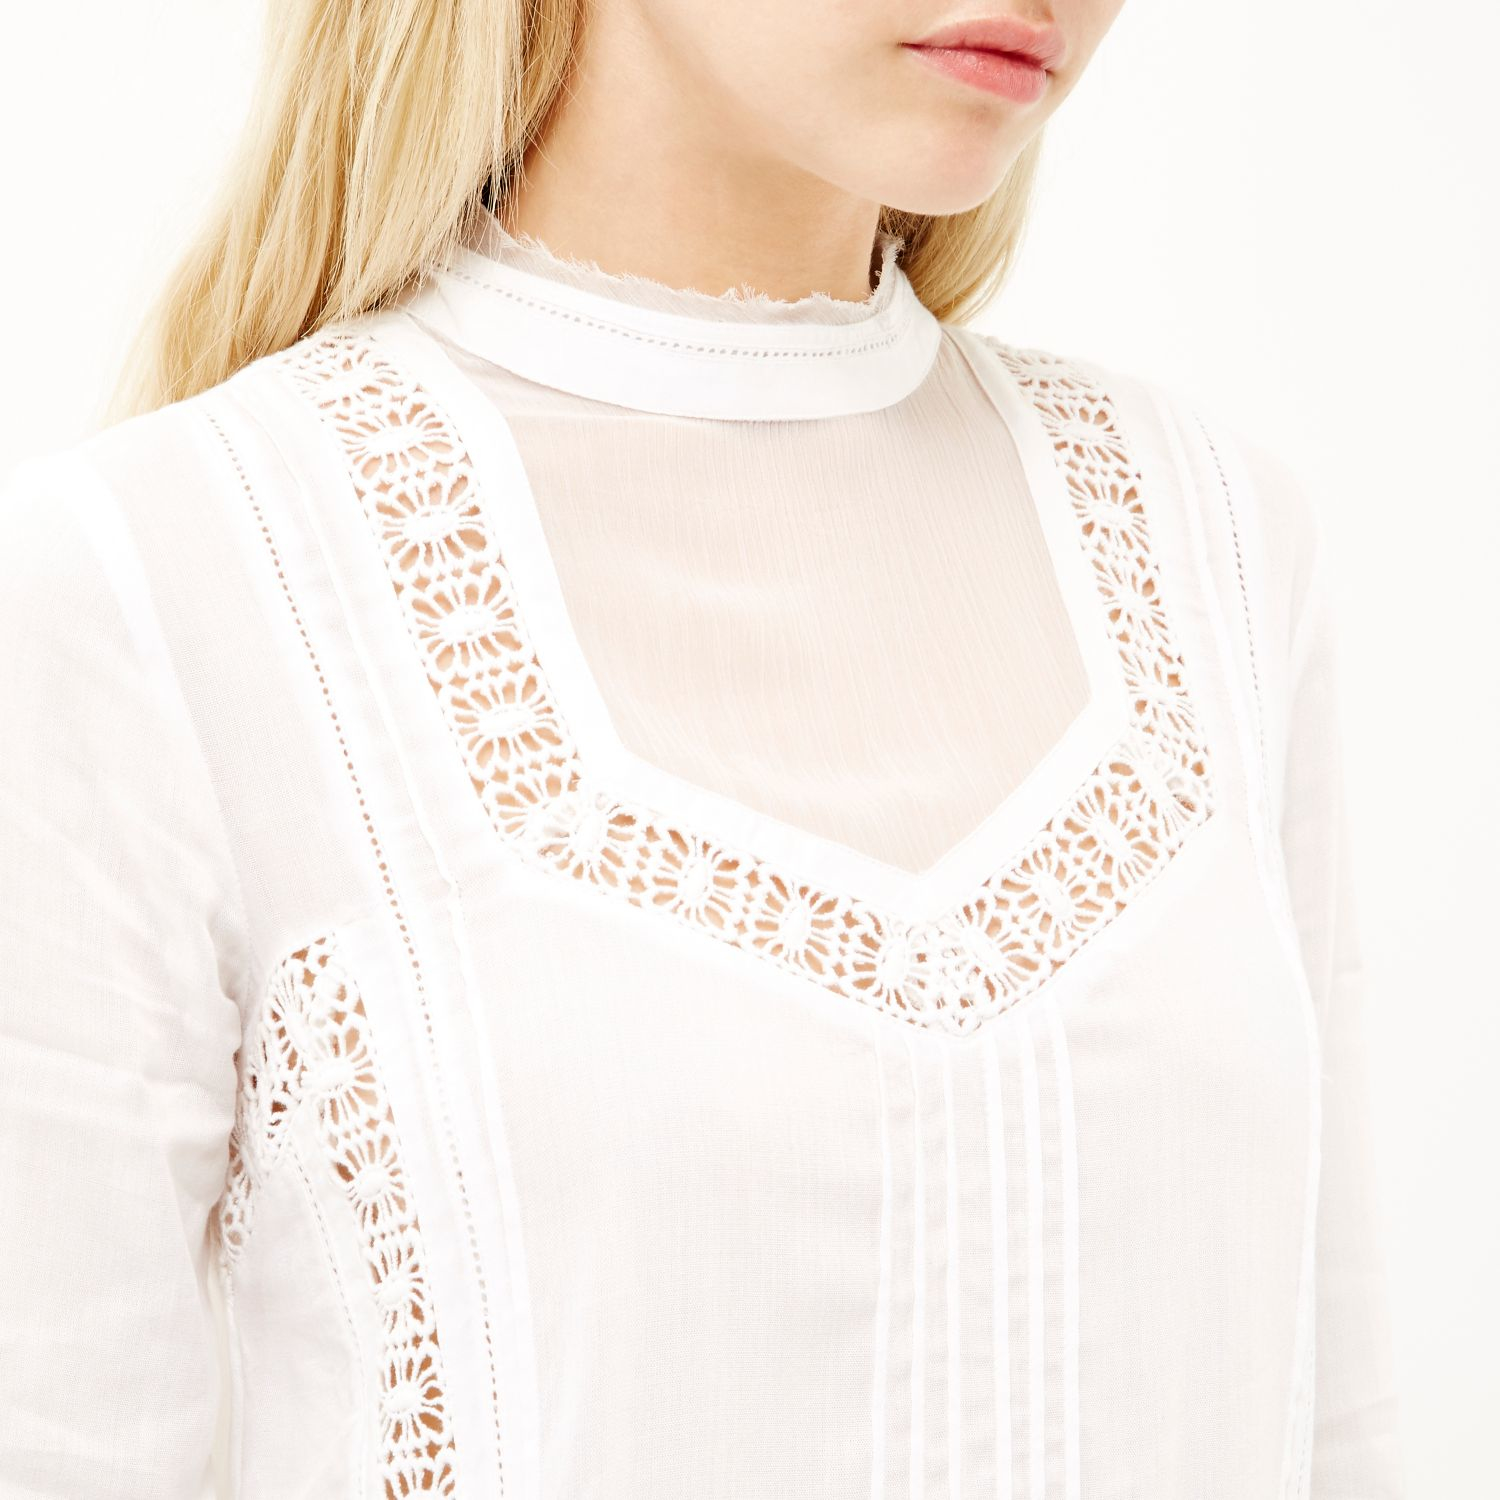 River island Cream Lace High Neck Blouse in Natural | Lyst